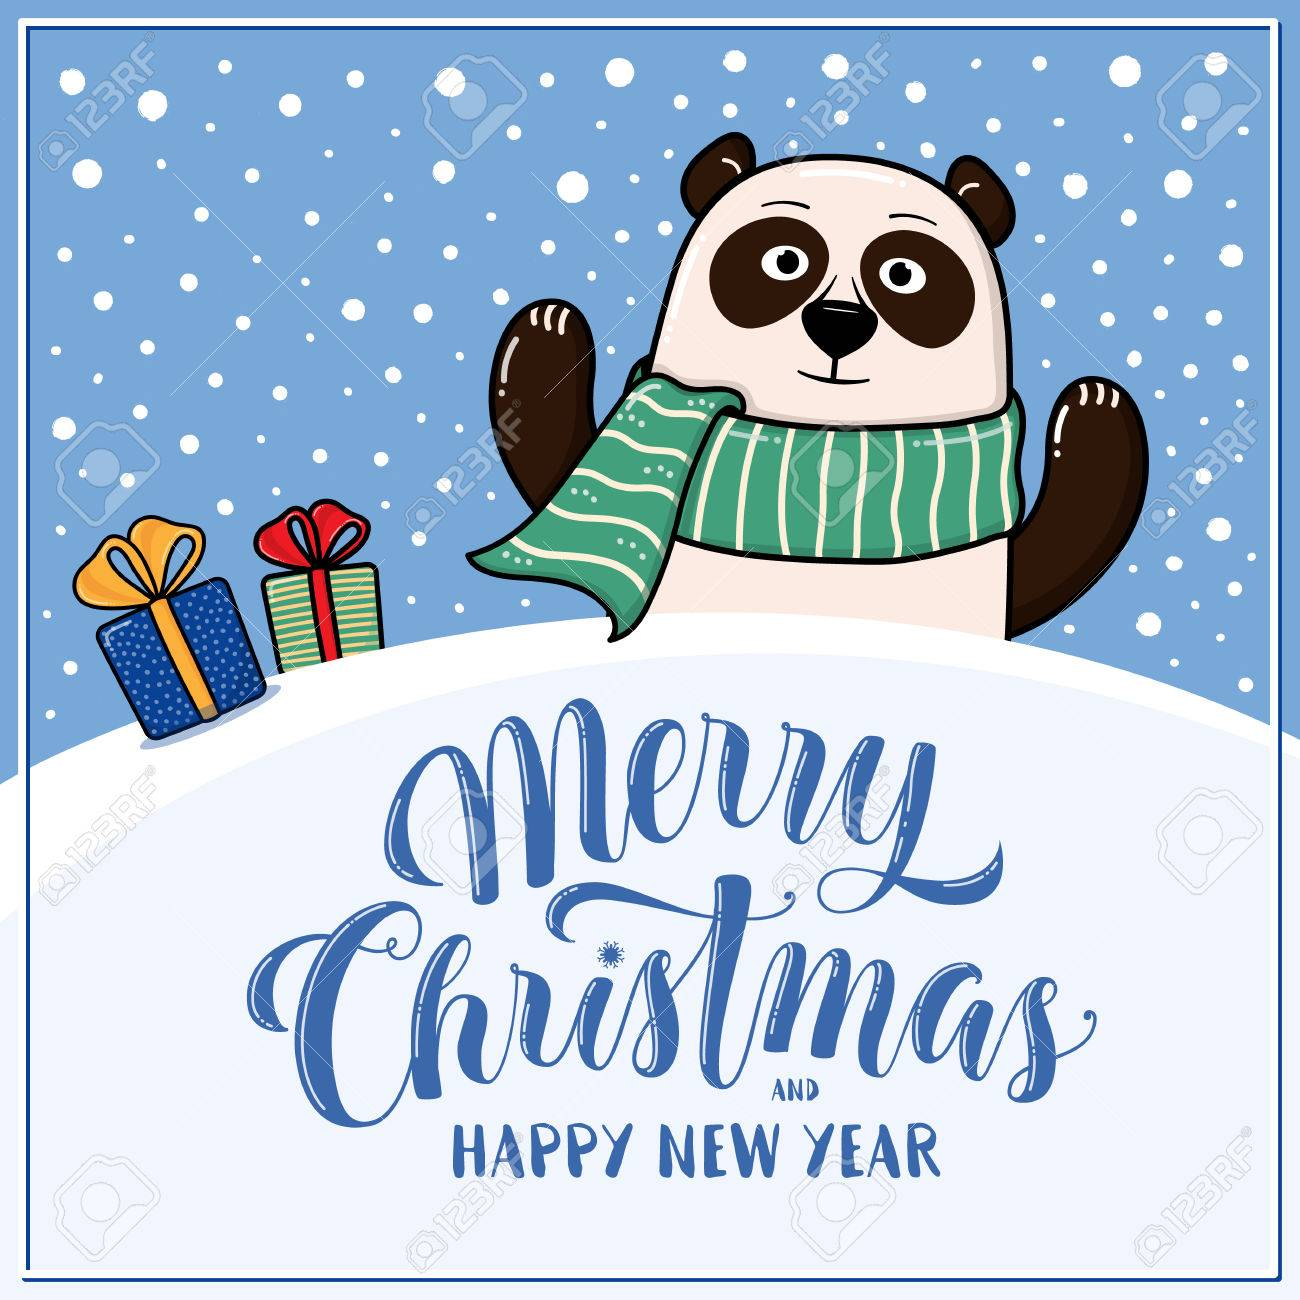 merry christmas and happy new year greeting card with panda gifts snow hills and